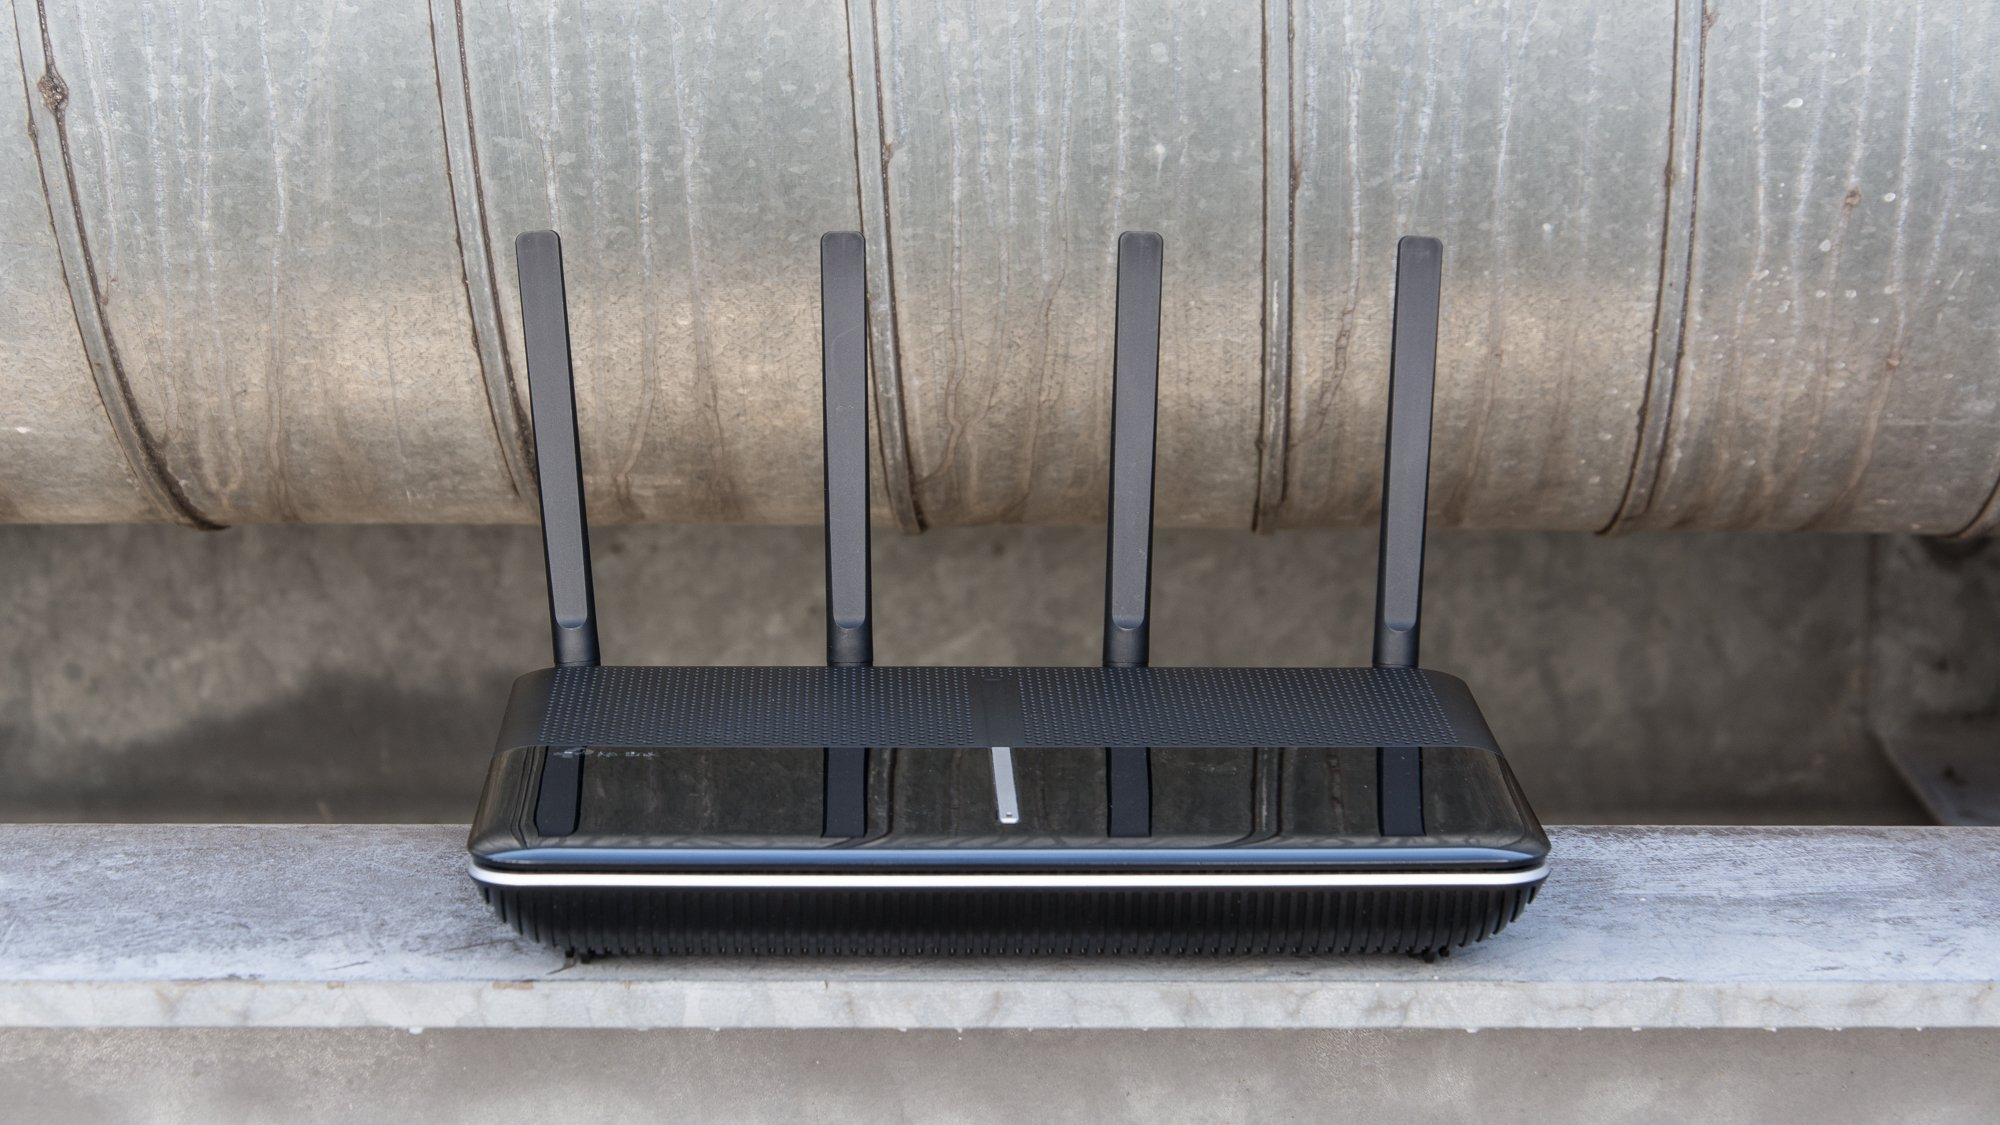 Best wireless routers 2019: Boost the range and speed of your